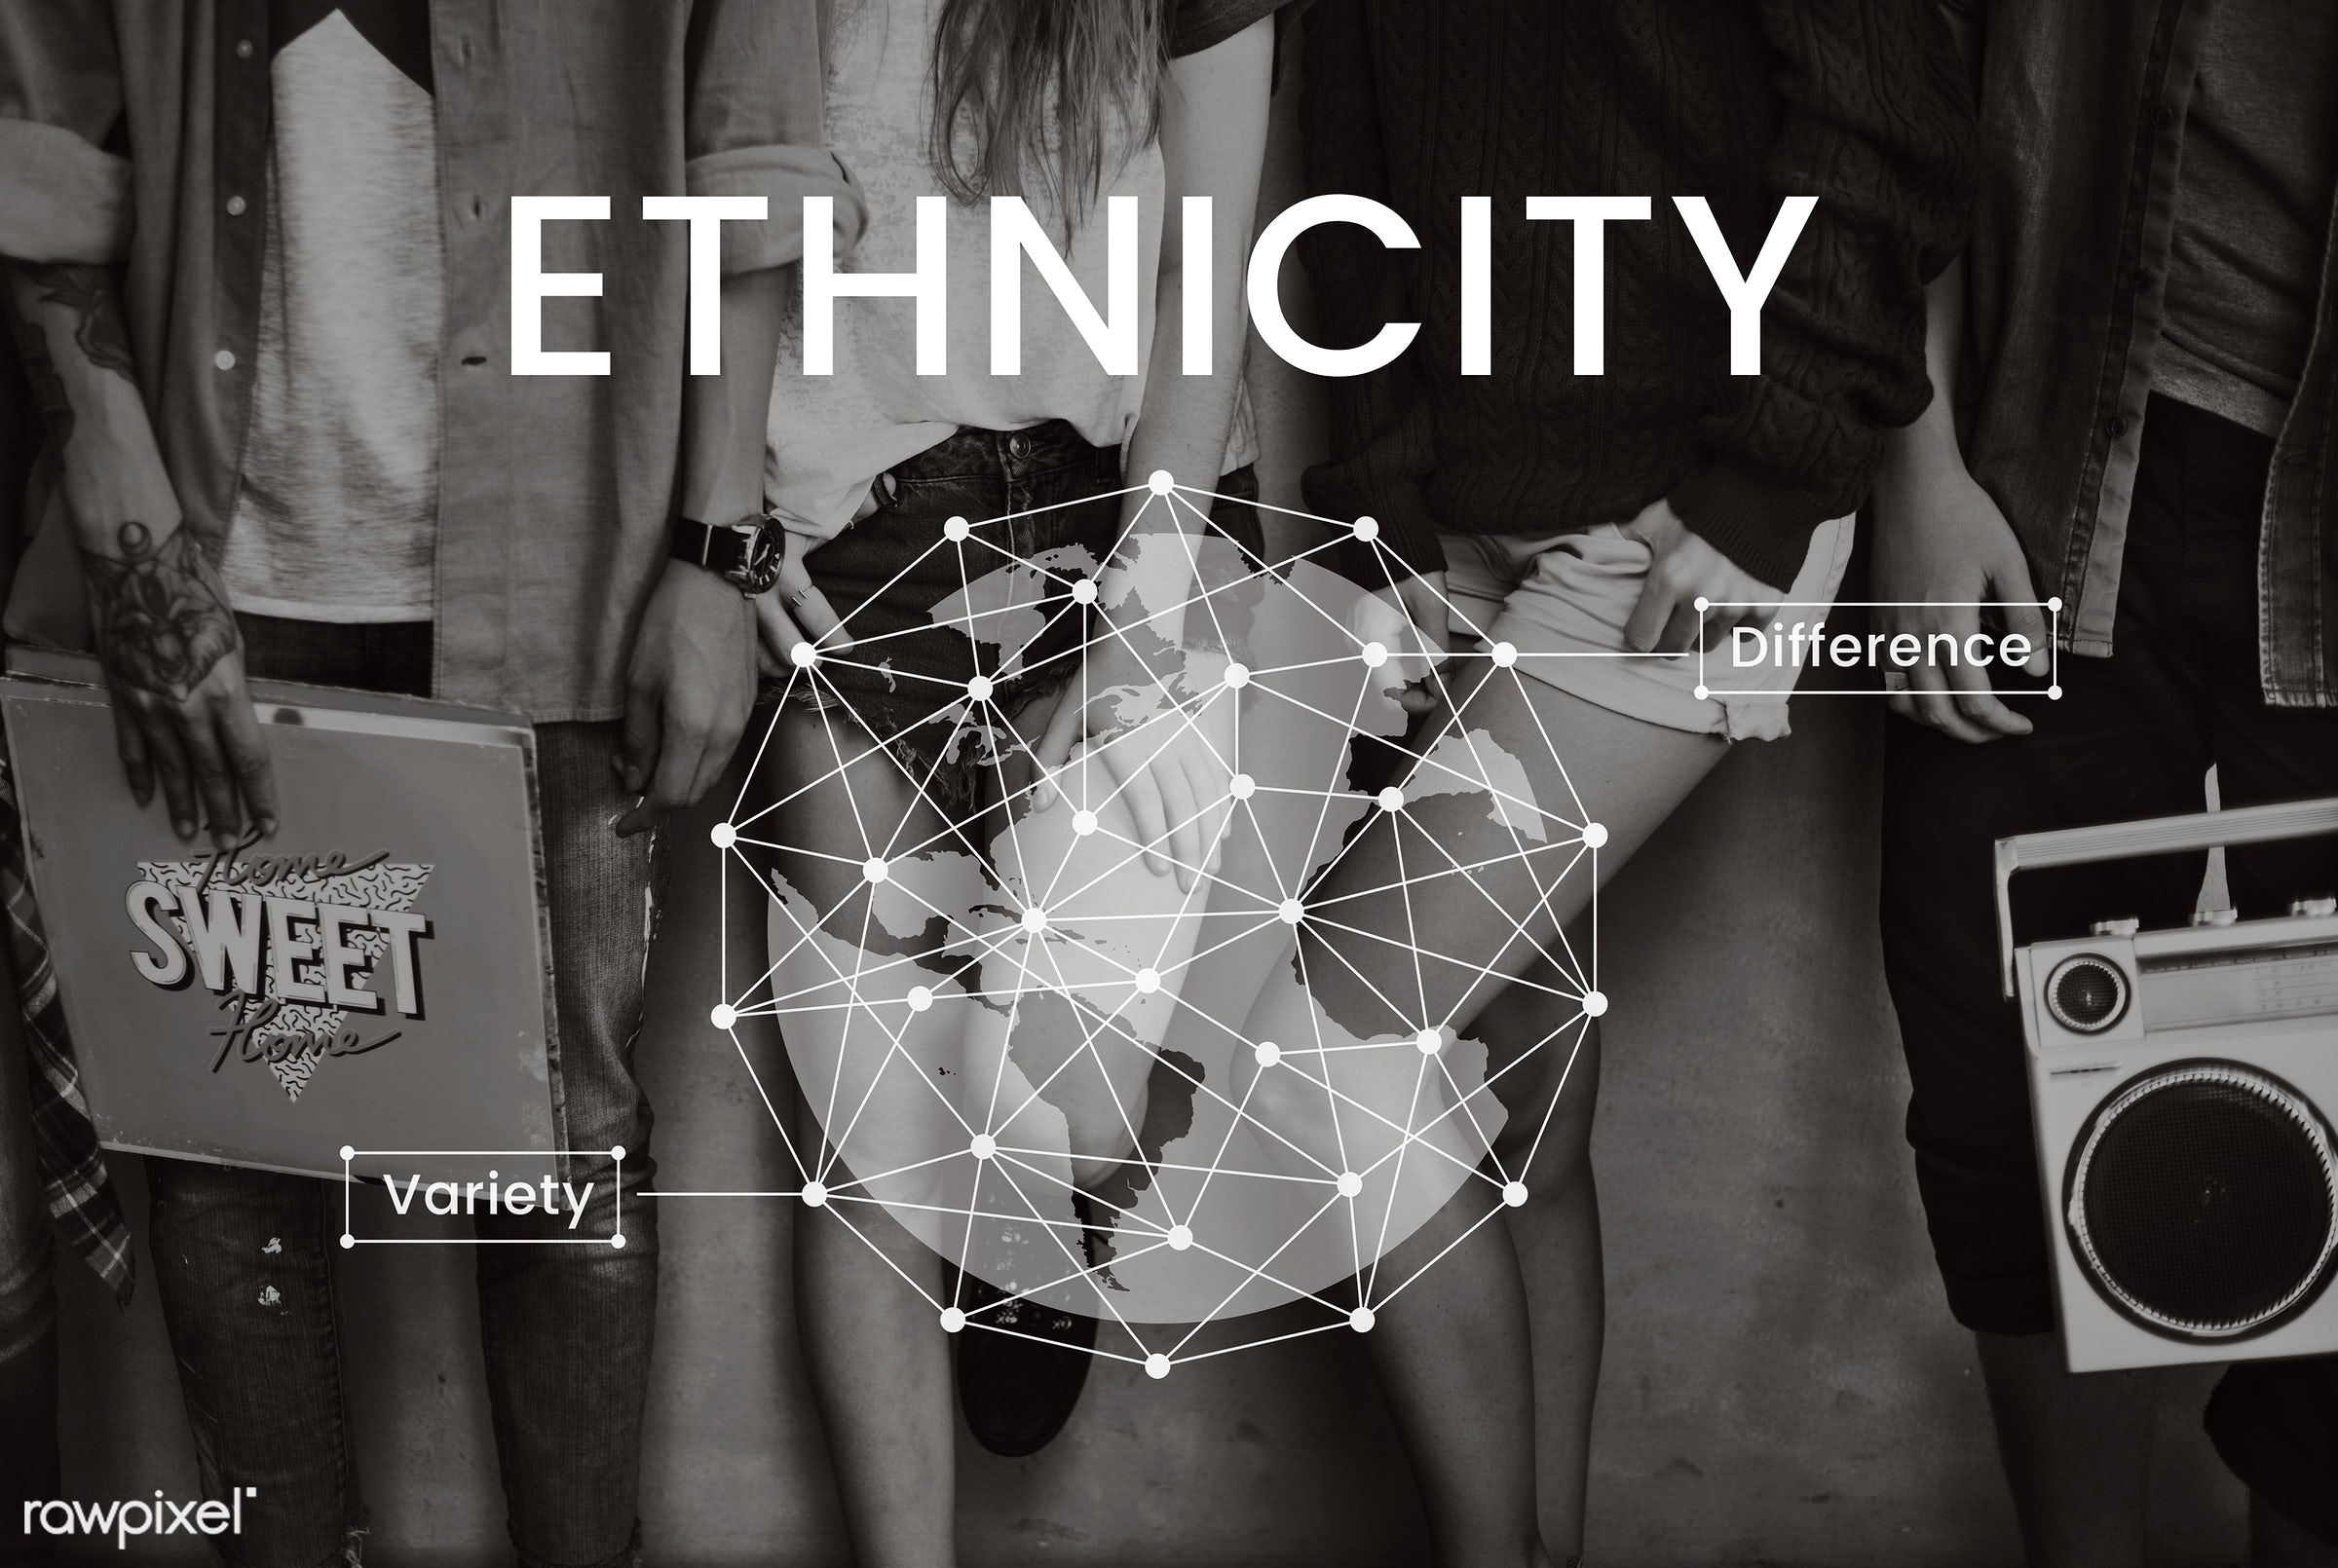 african descent, asian, audio, business, caucasian, cloud, community, control, data, database, difference, digital,...